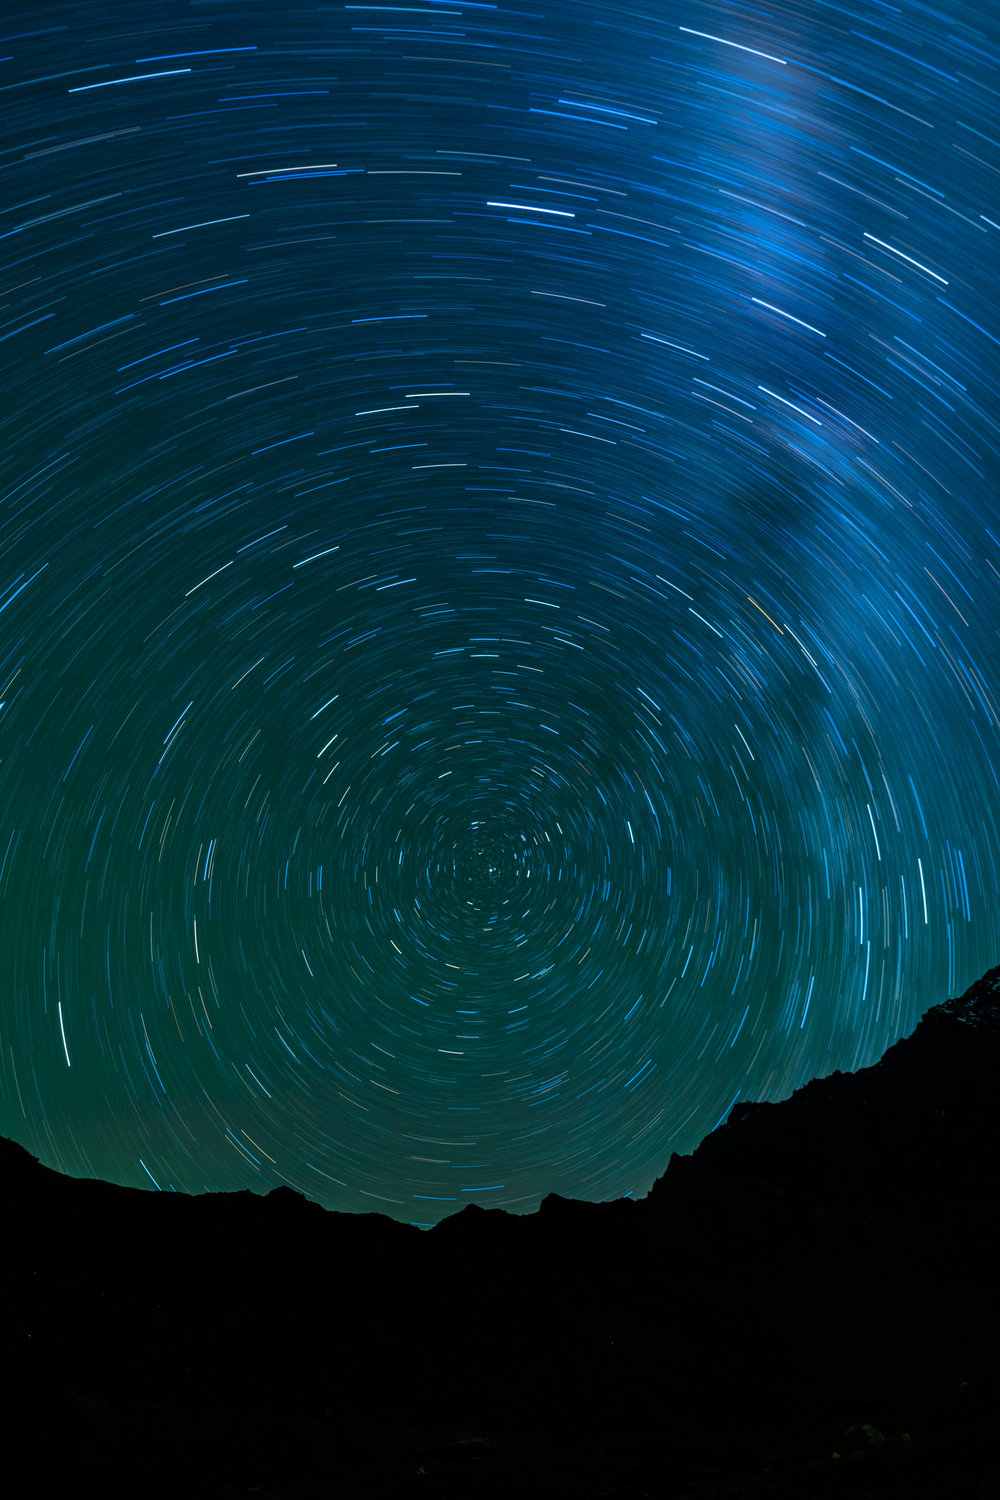 North Star Trails in the Sky